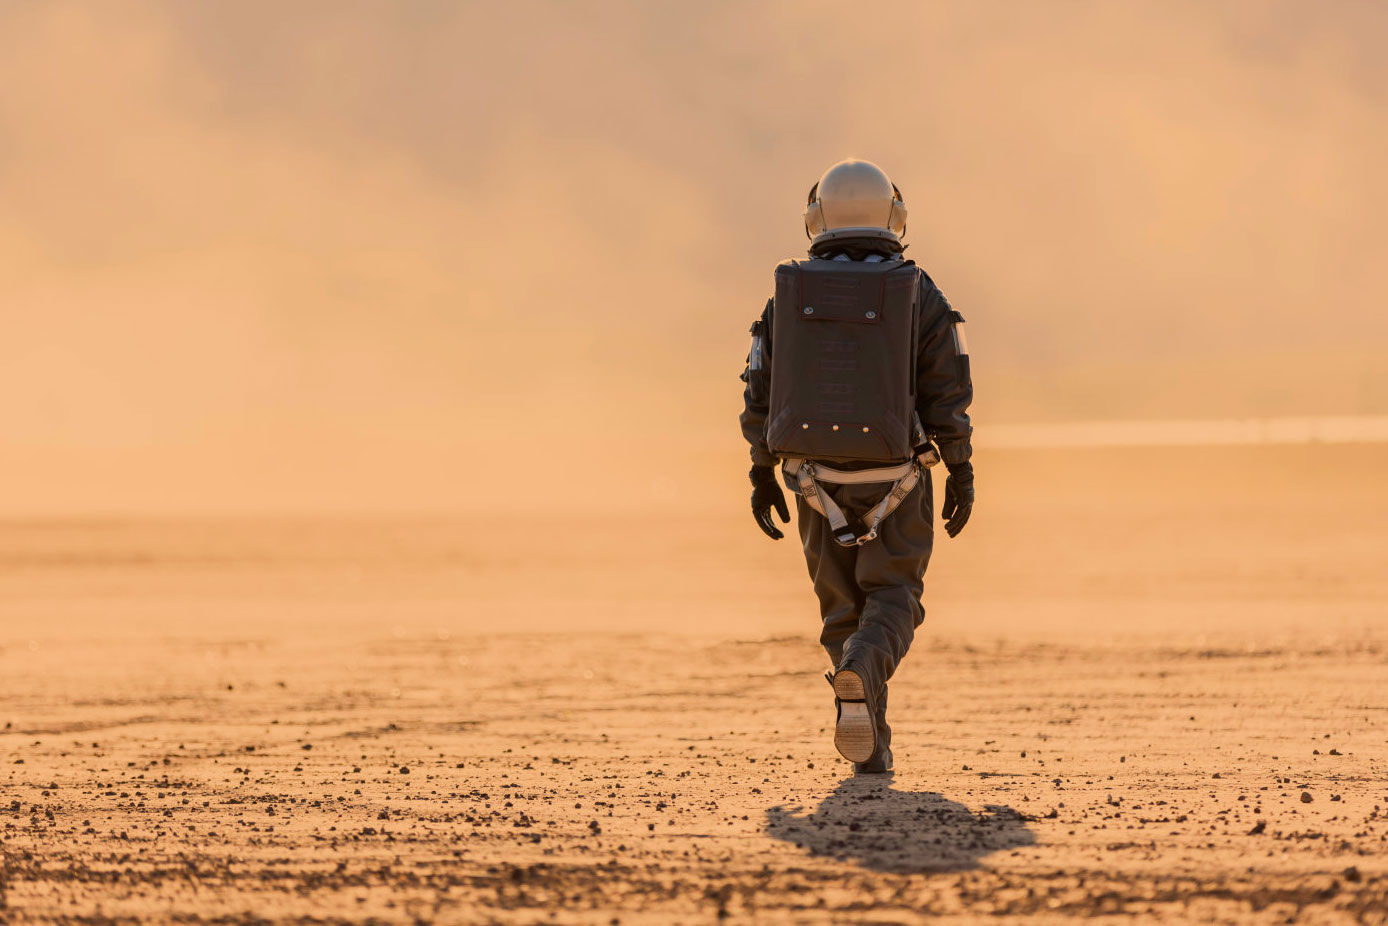 Company that advertised one-way trips to Mars goes bankrupt